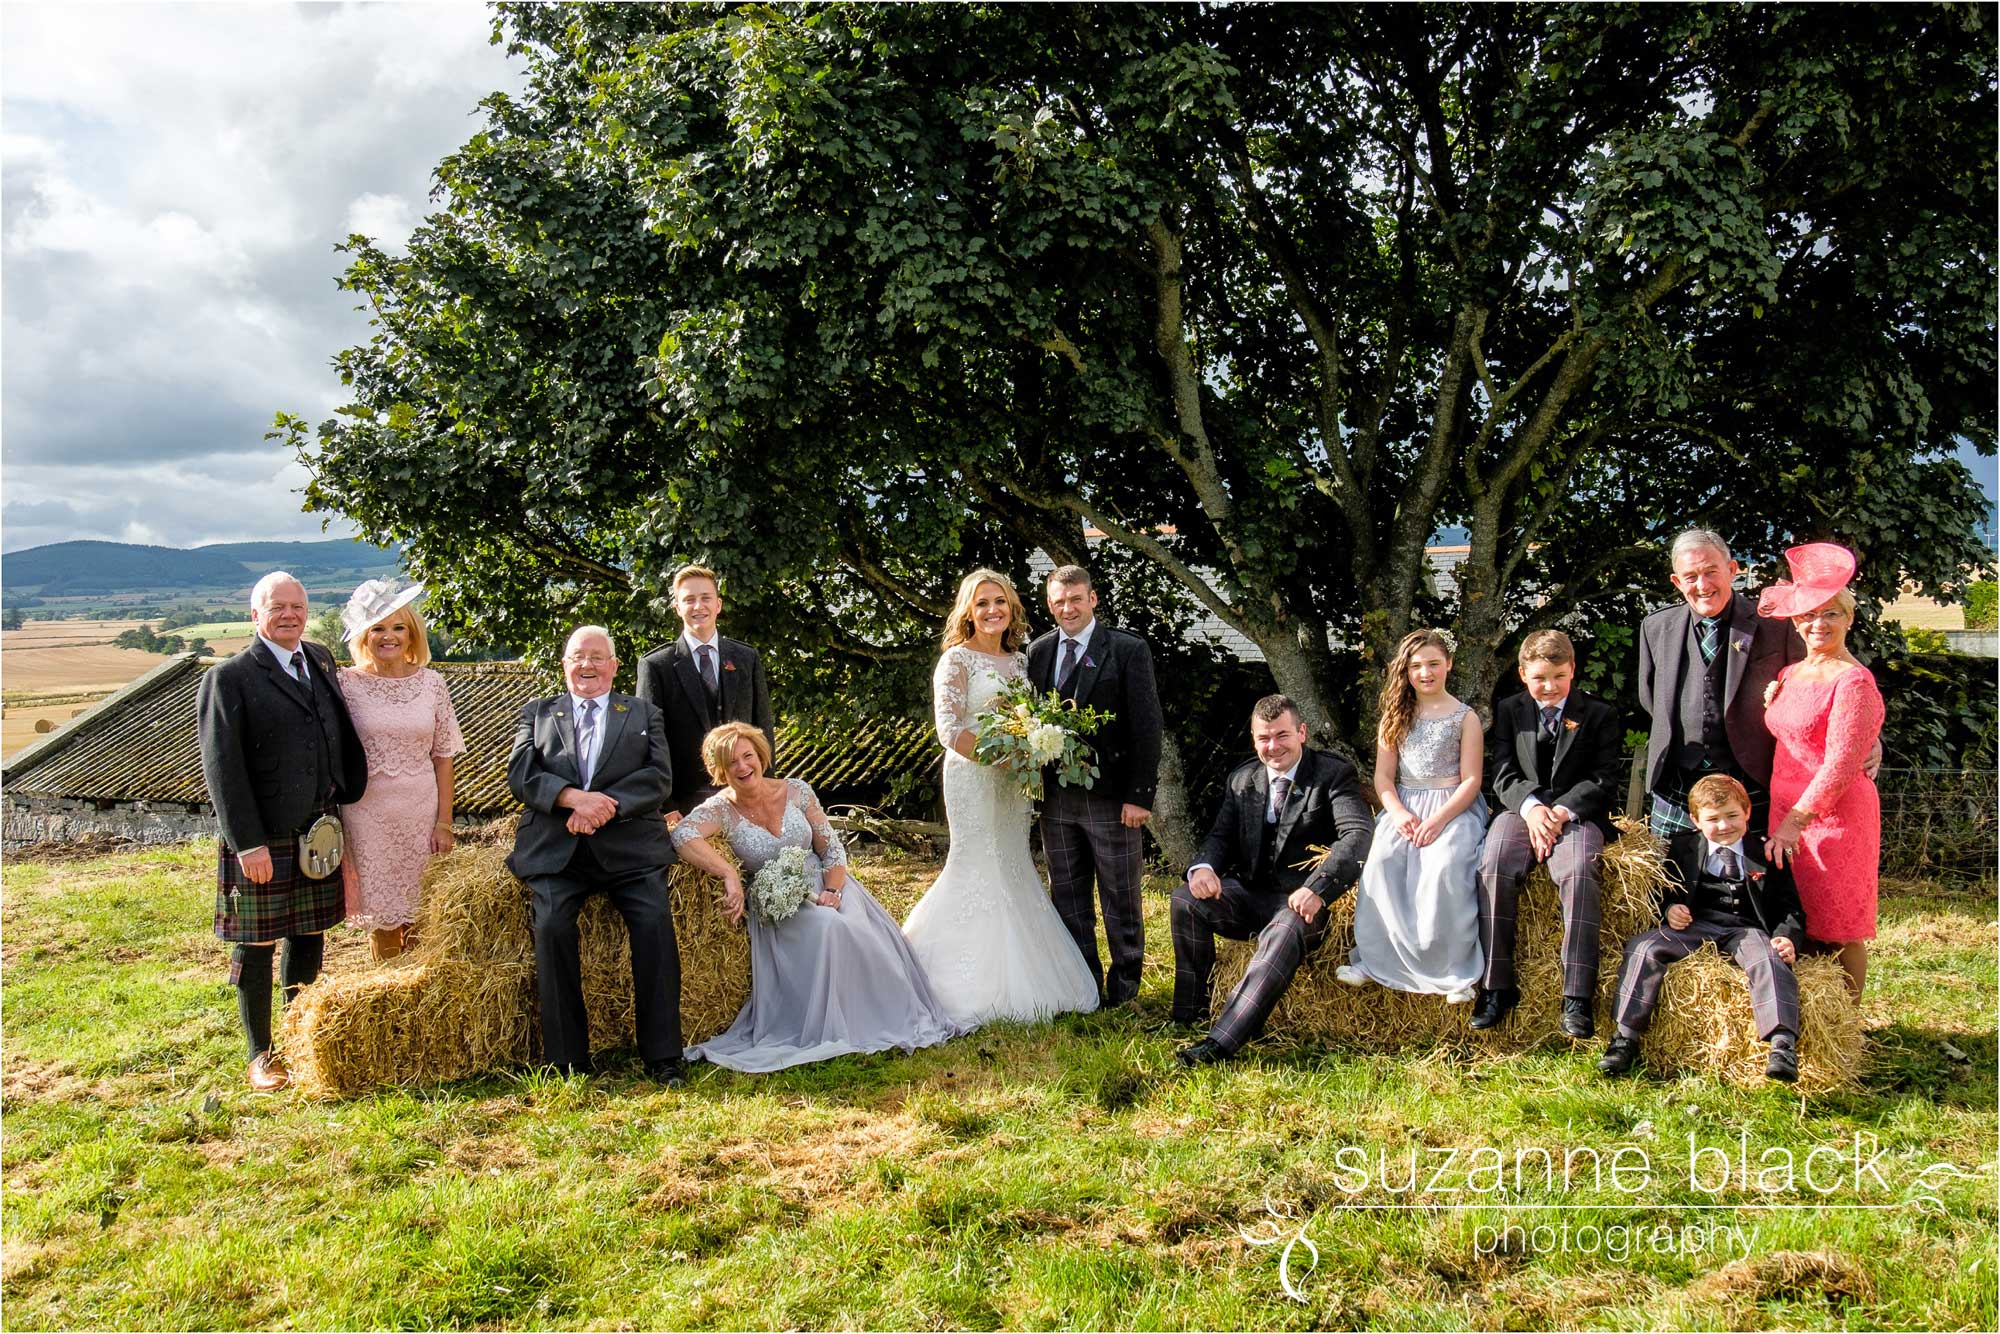 Aberdeen Wedding Photography by Suzanne Black Photography